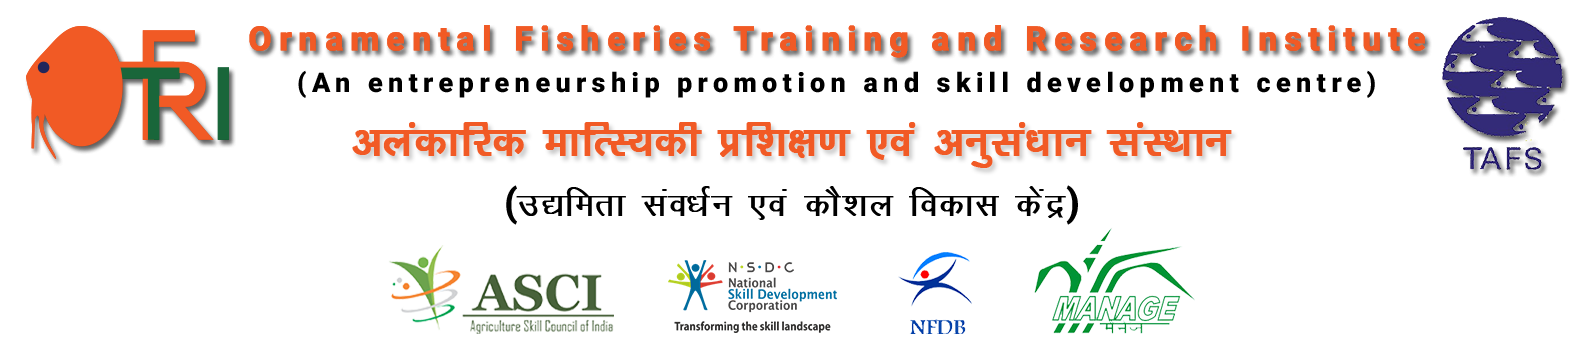 Ornamental Fisheries Training and Research Institute